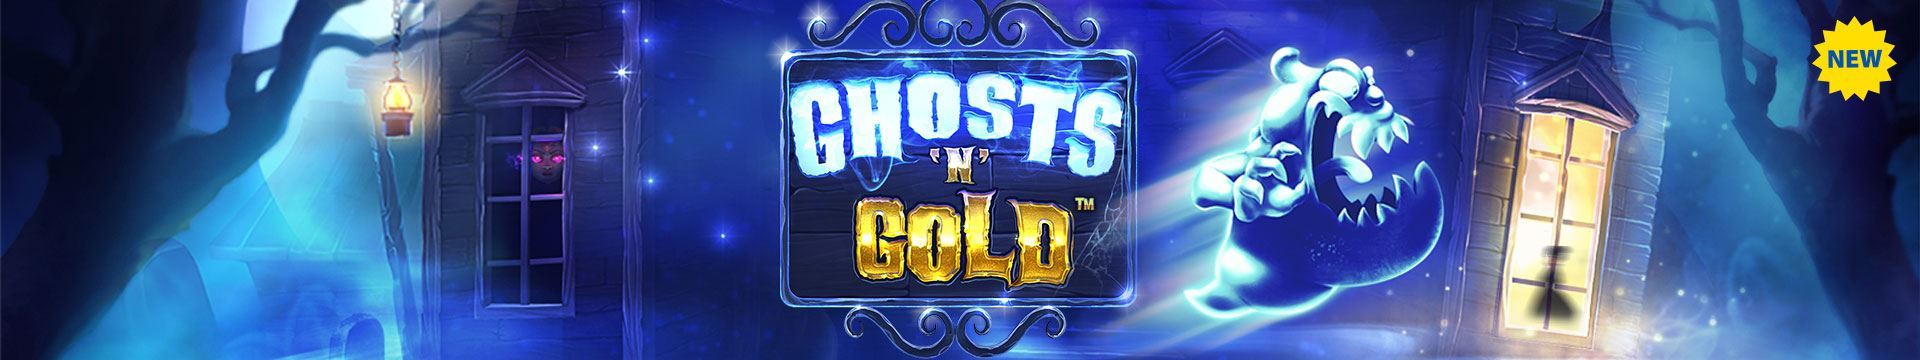 Ghosts_and_Gold